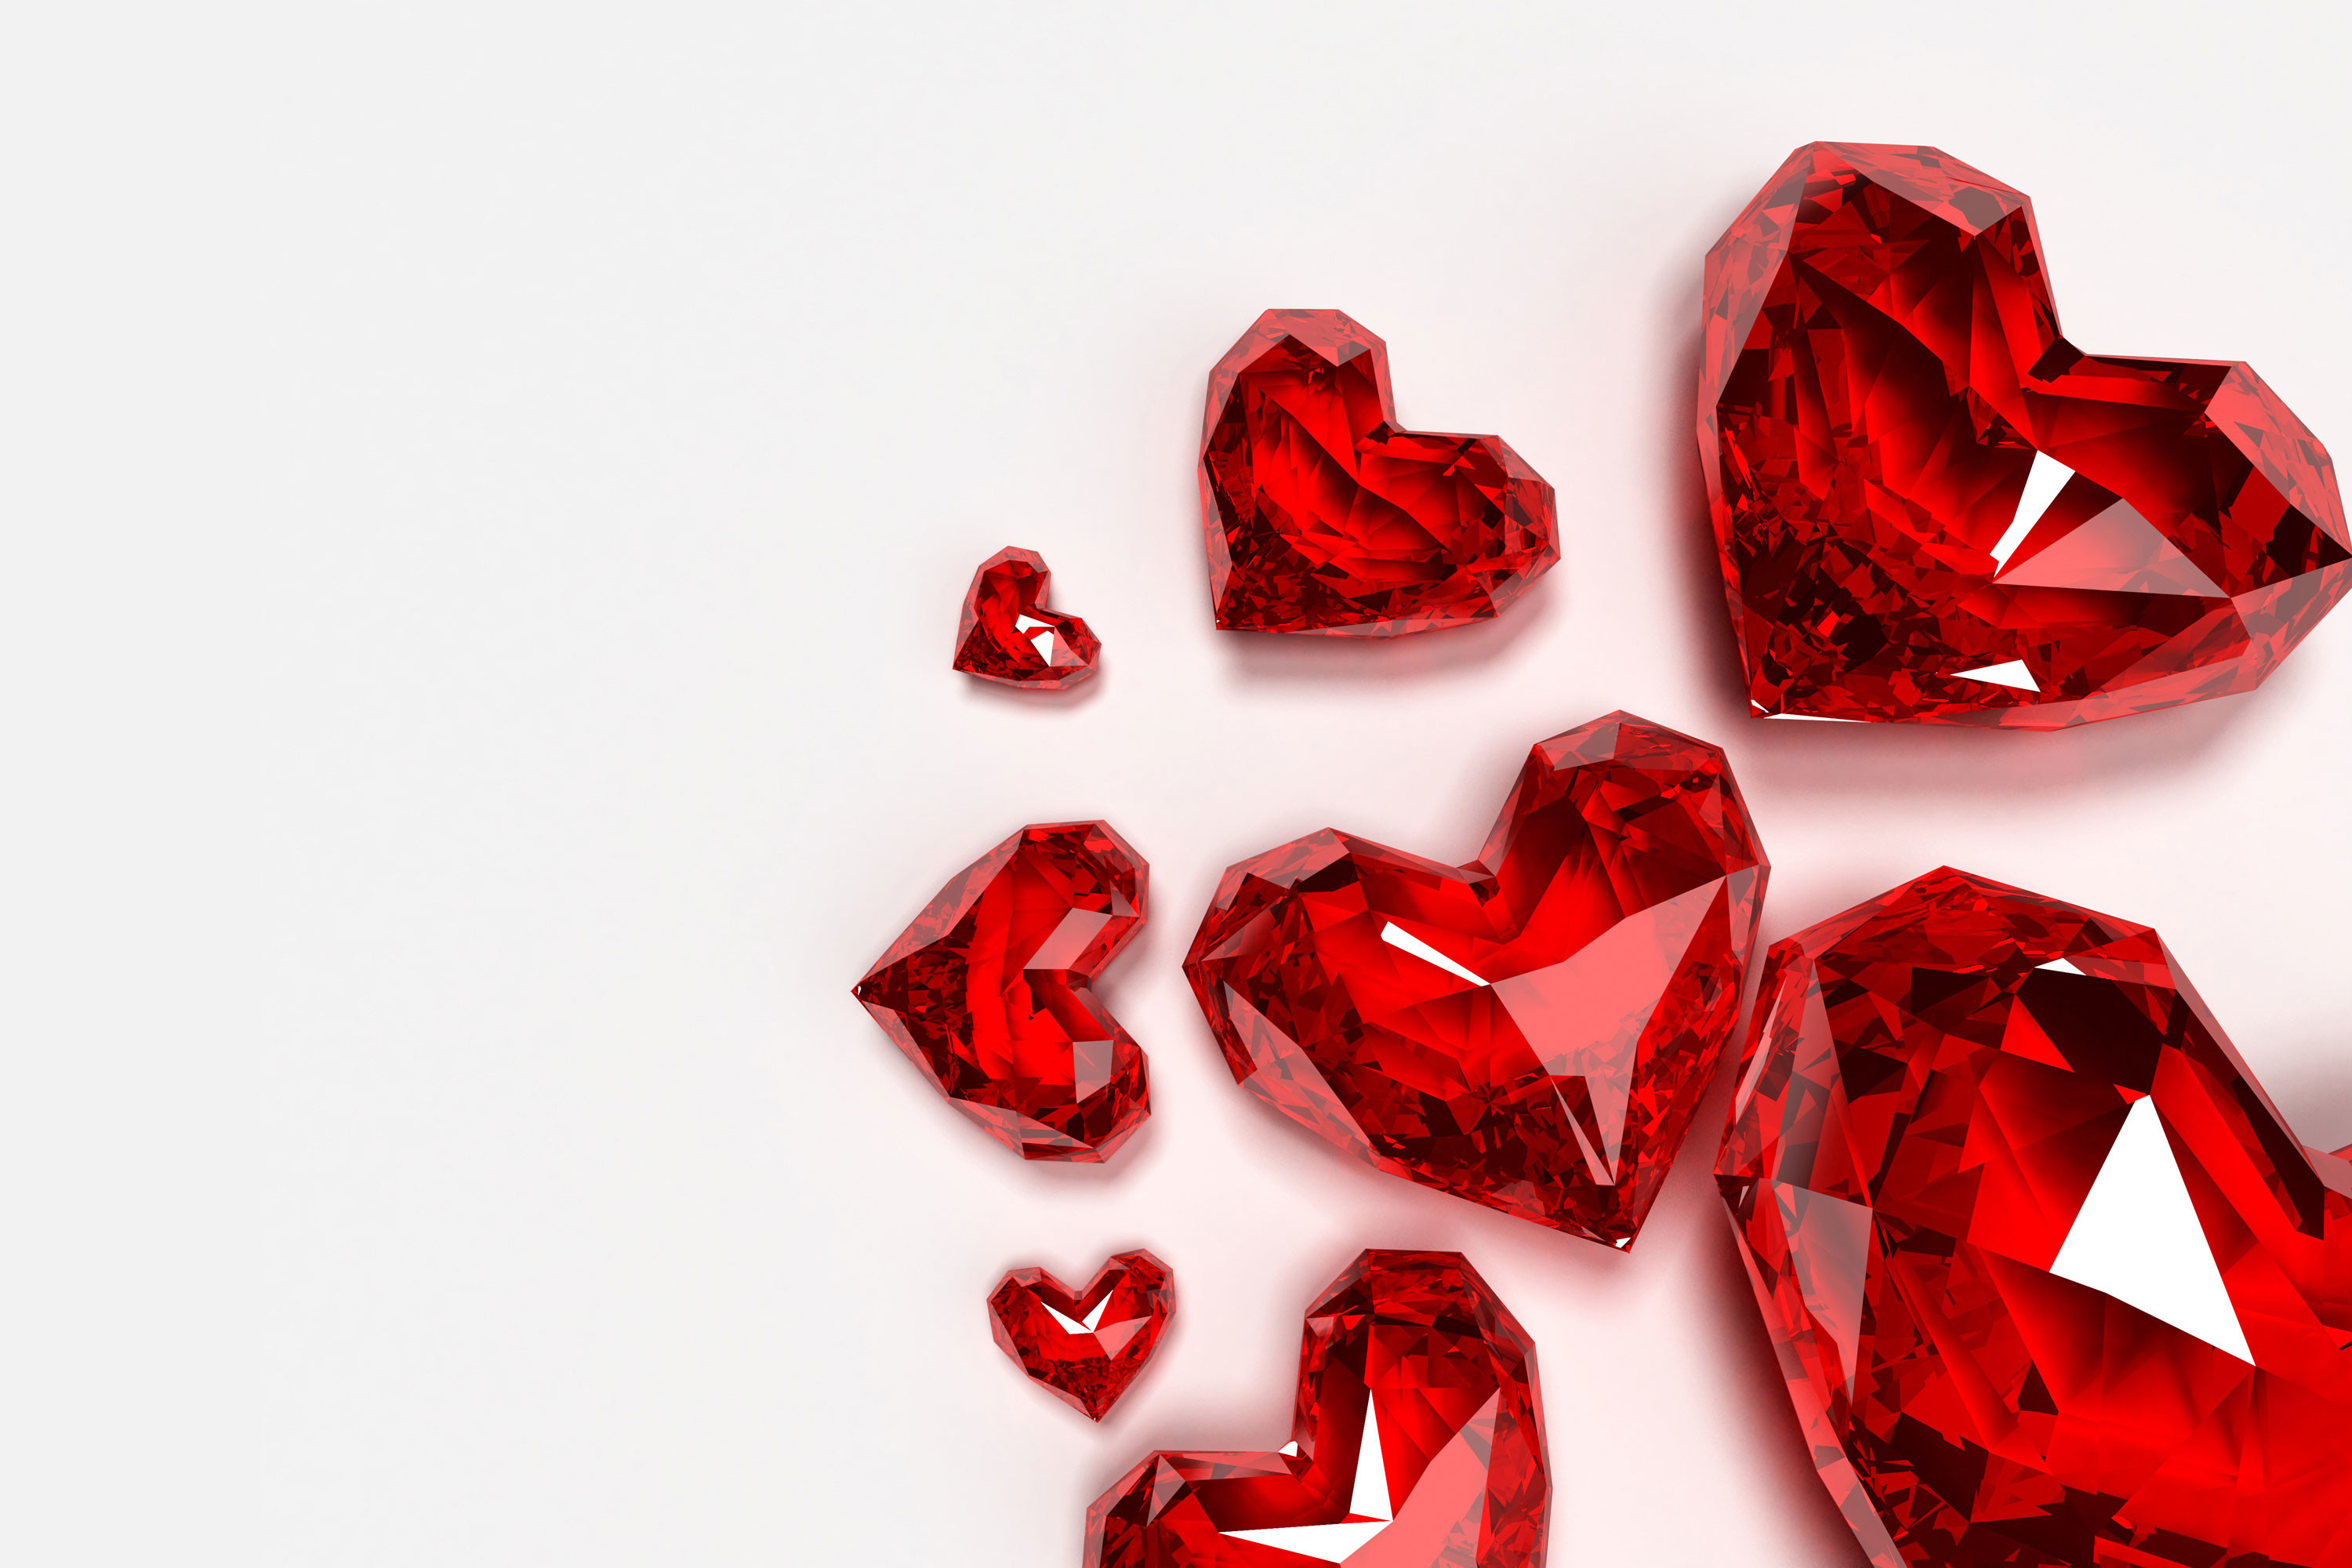 Res: 3000x2000, Love Shaped Diamond Wallpaper